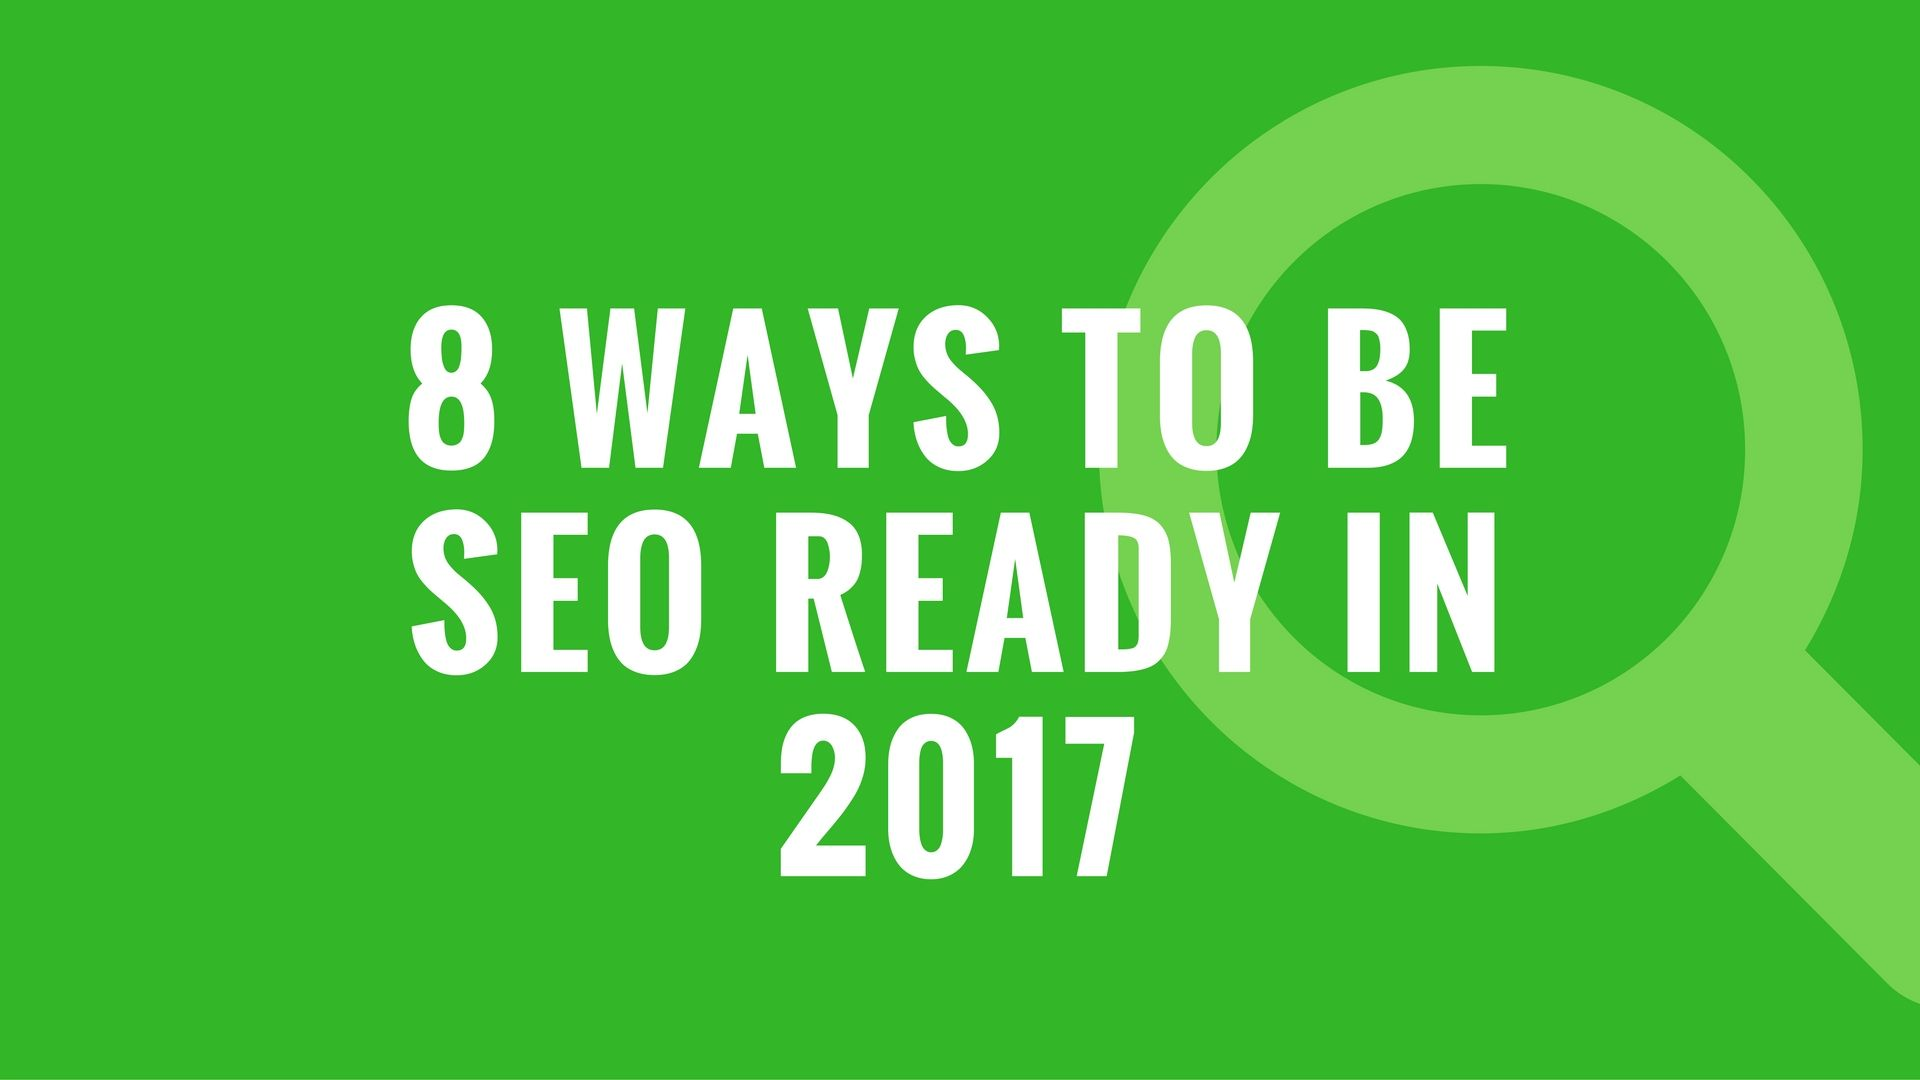 8 Ways to be SEO Ready in 2017 Seo, Online marketing